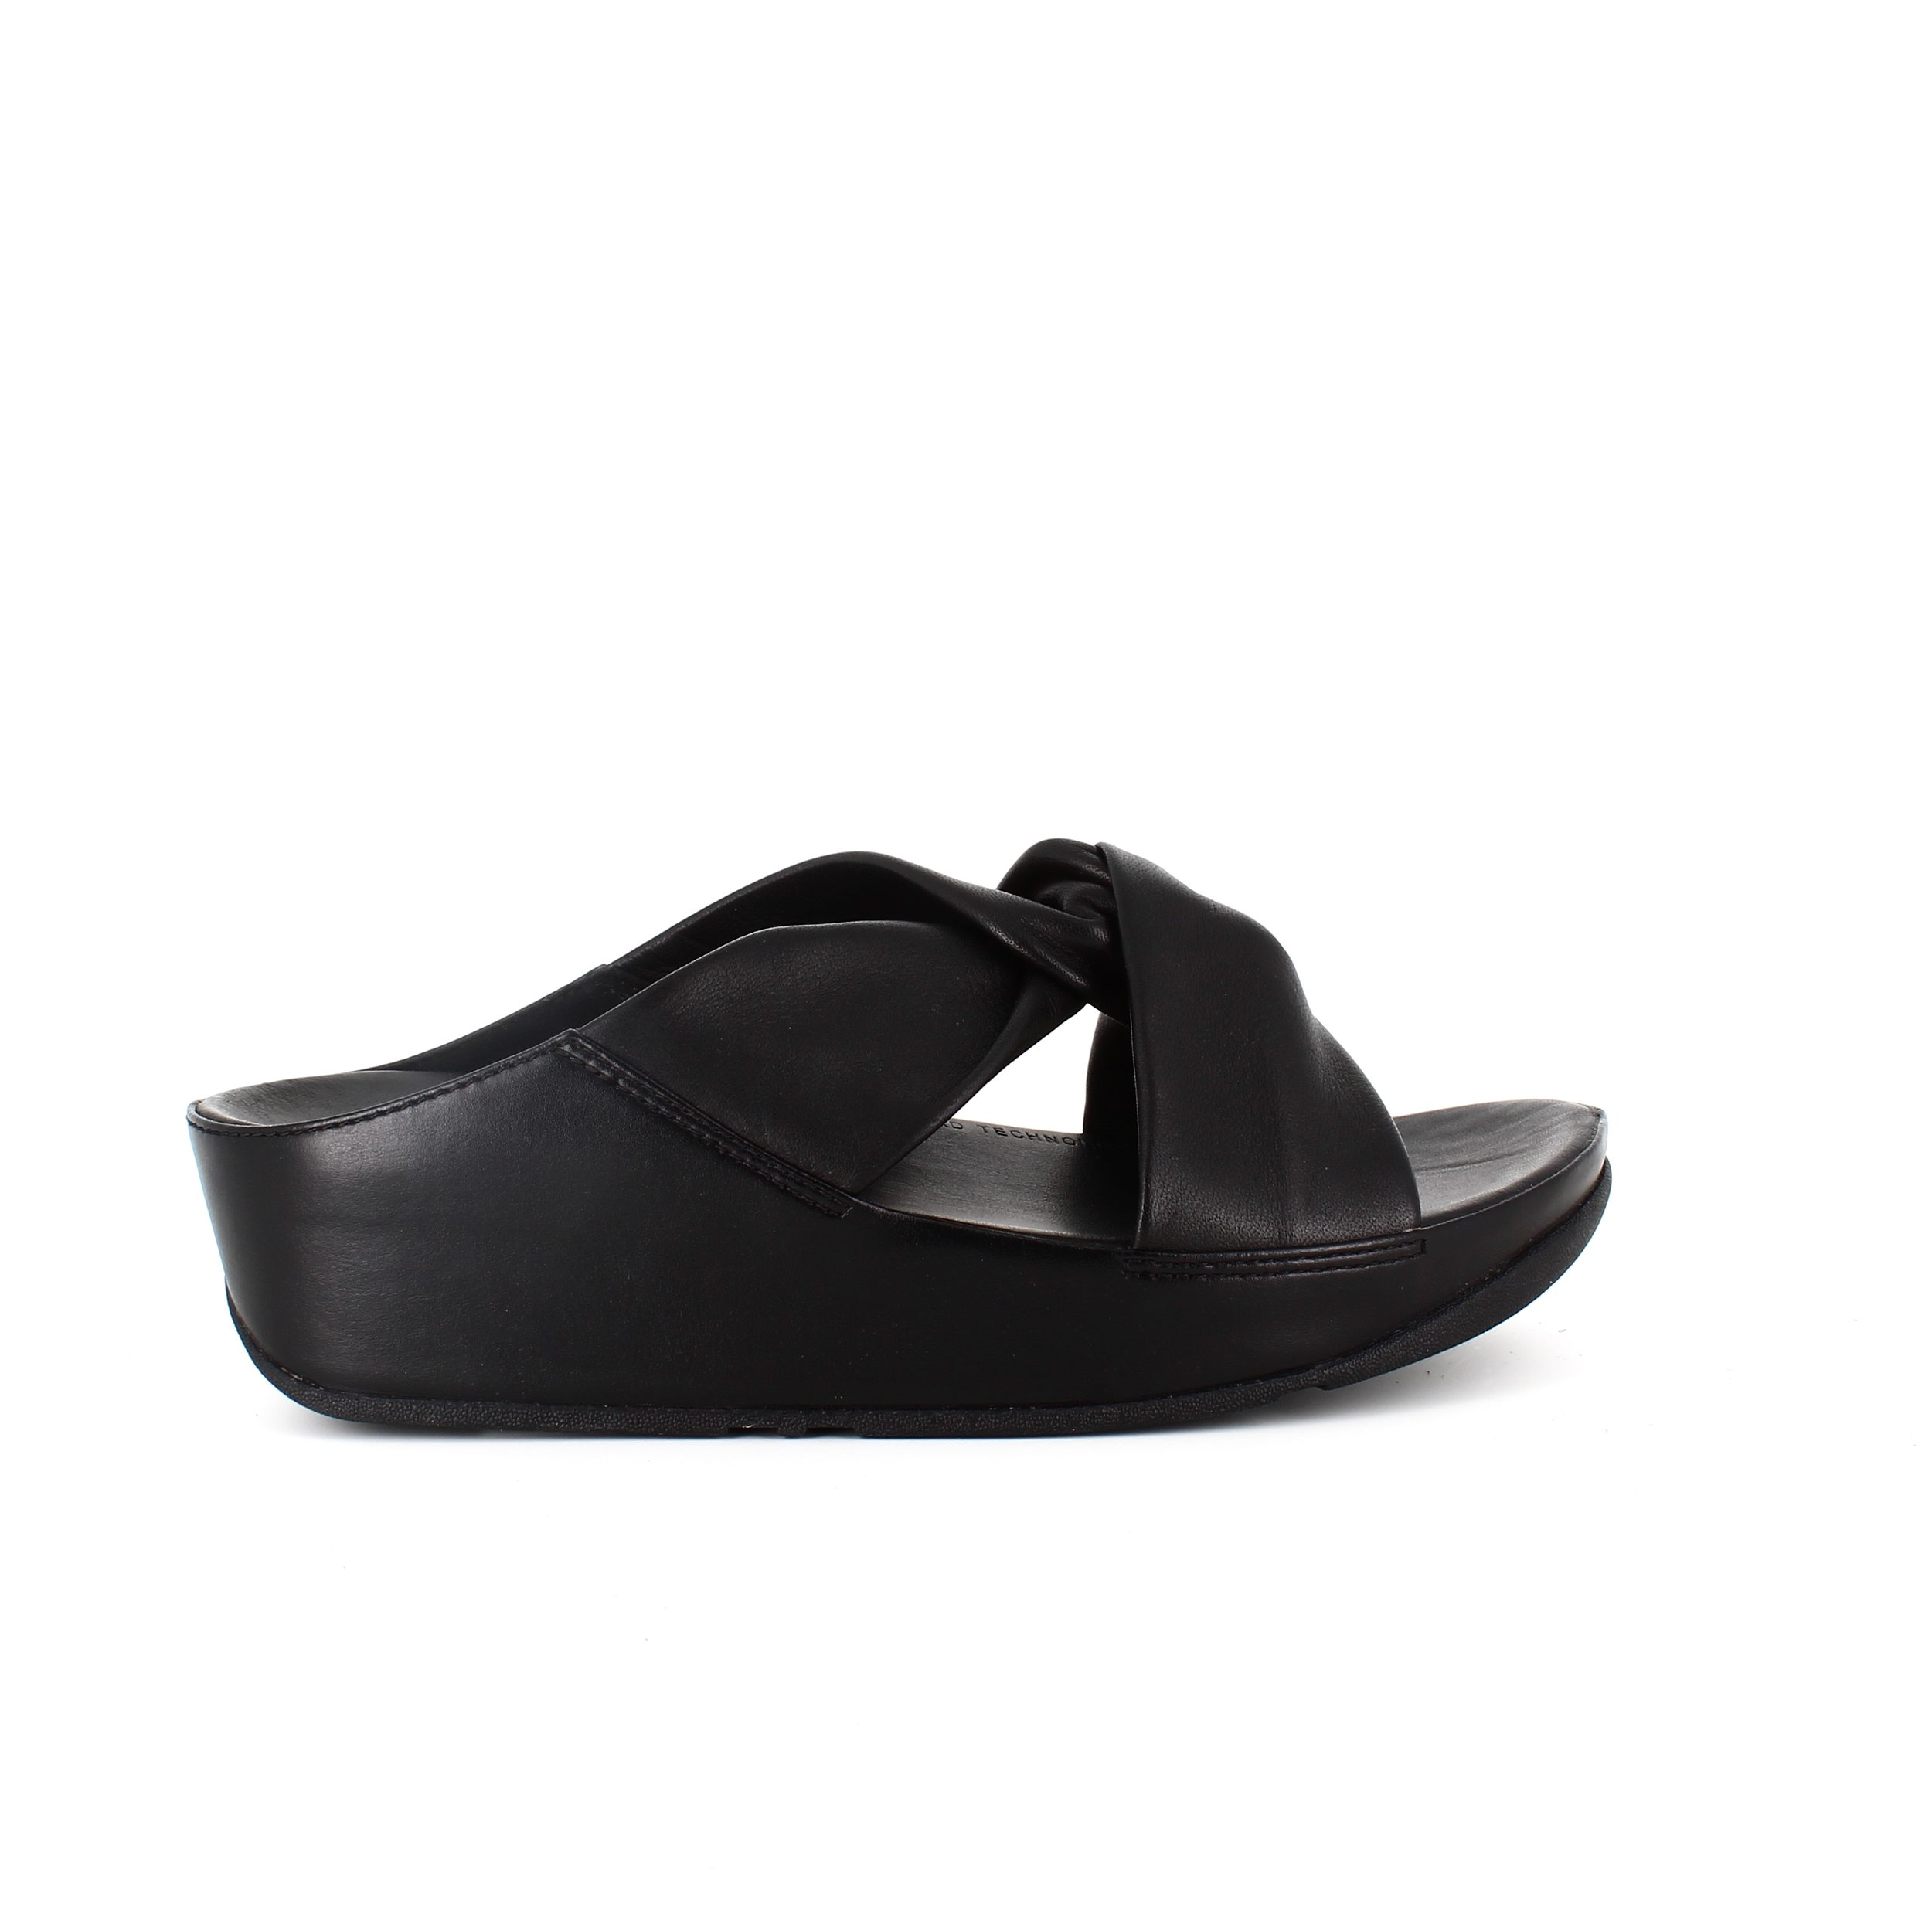 Image of   Fitflop læder sandal twiss slide - 39